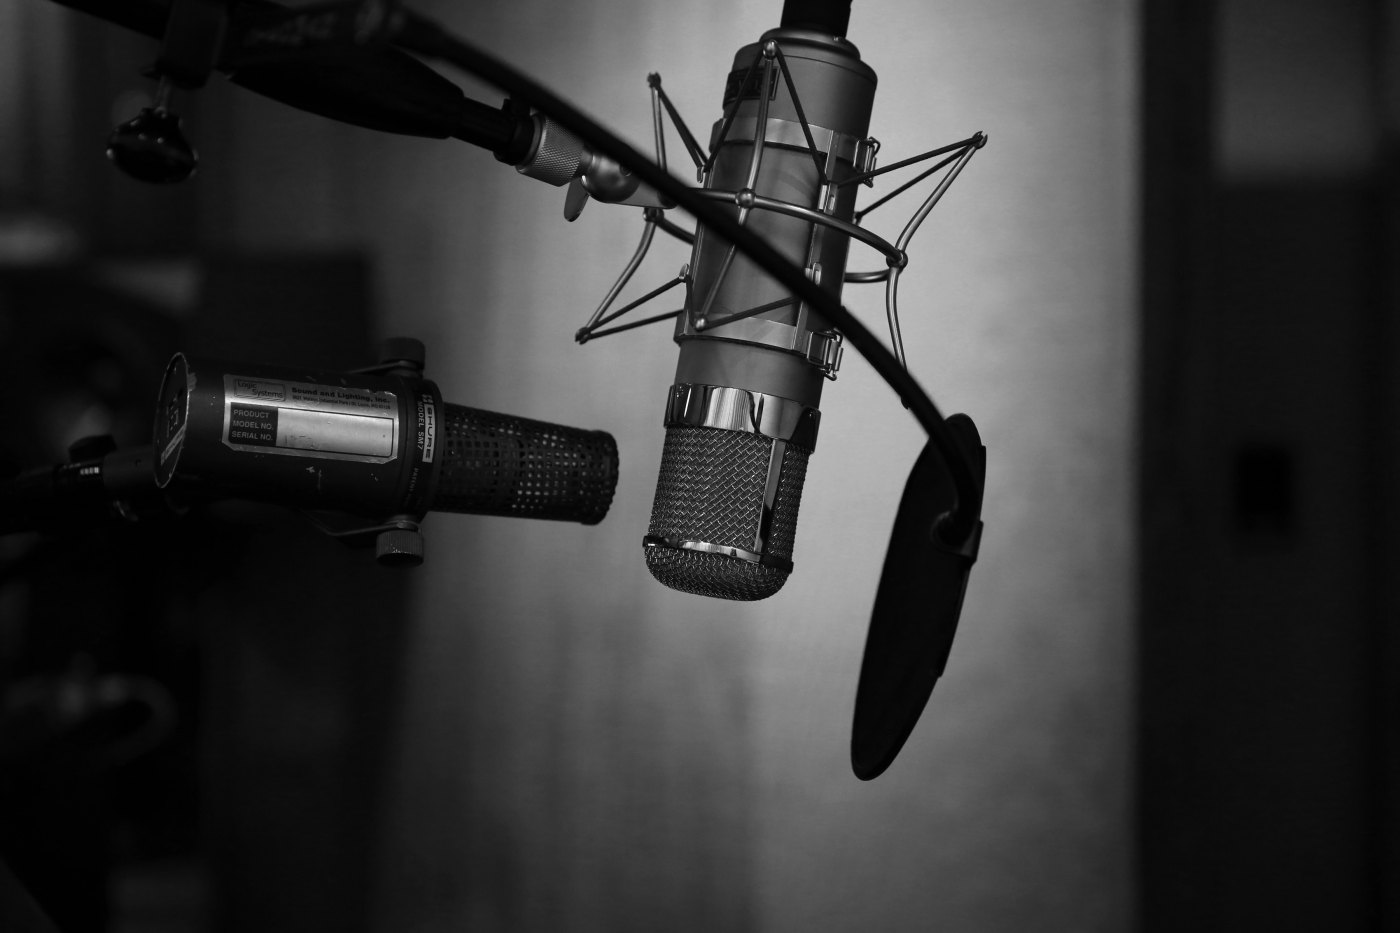 ID: A grayscale photo of a microphone set-up